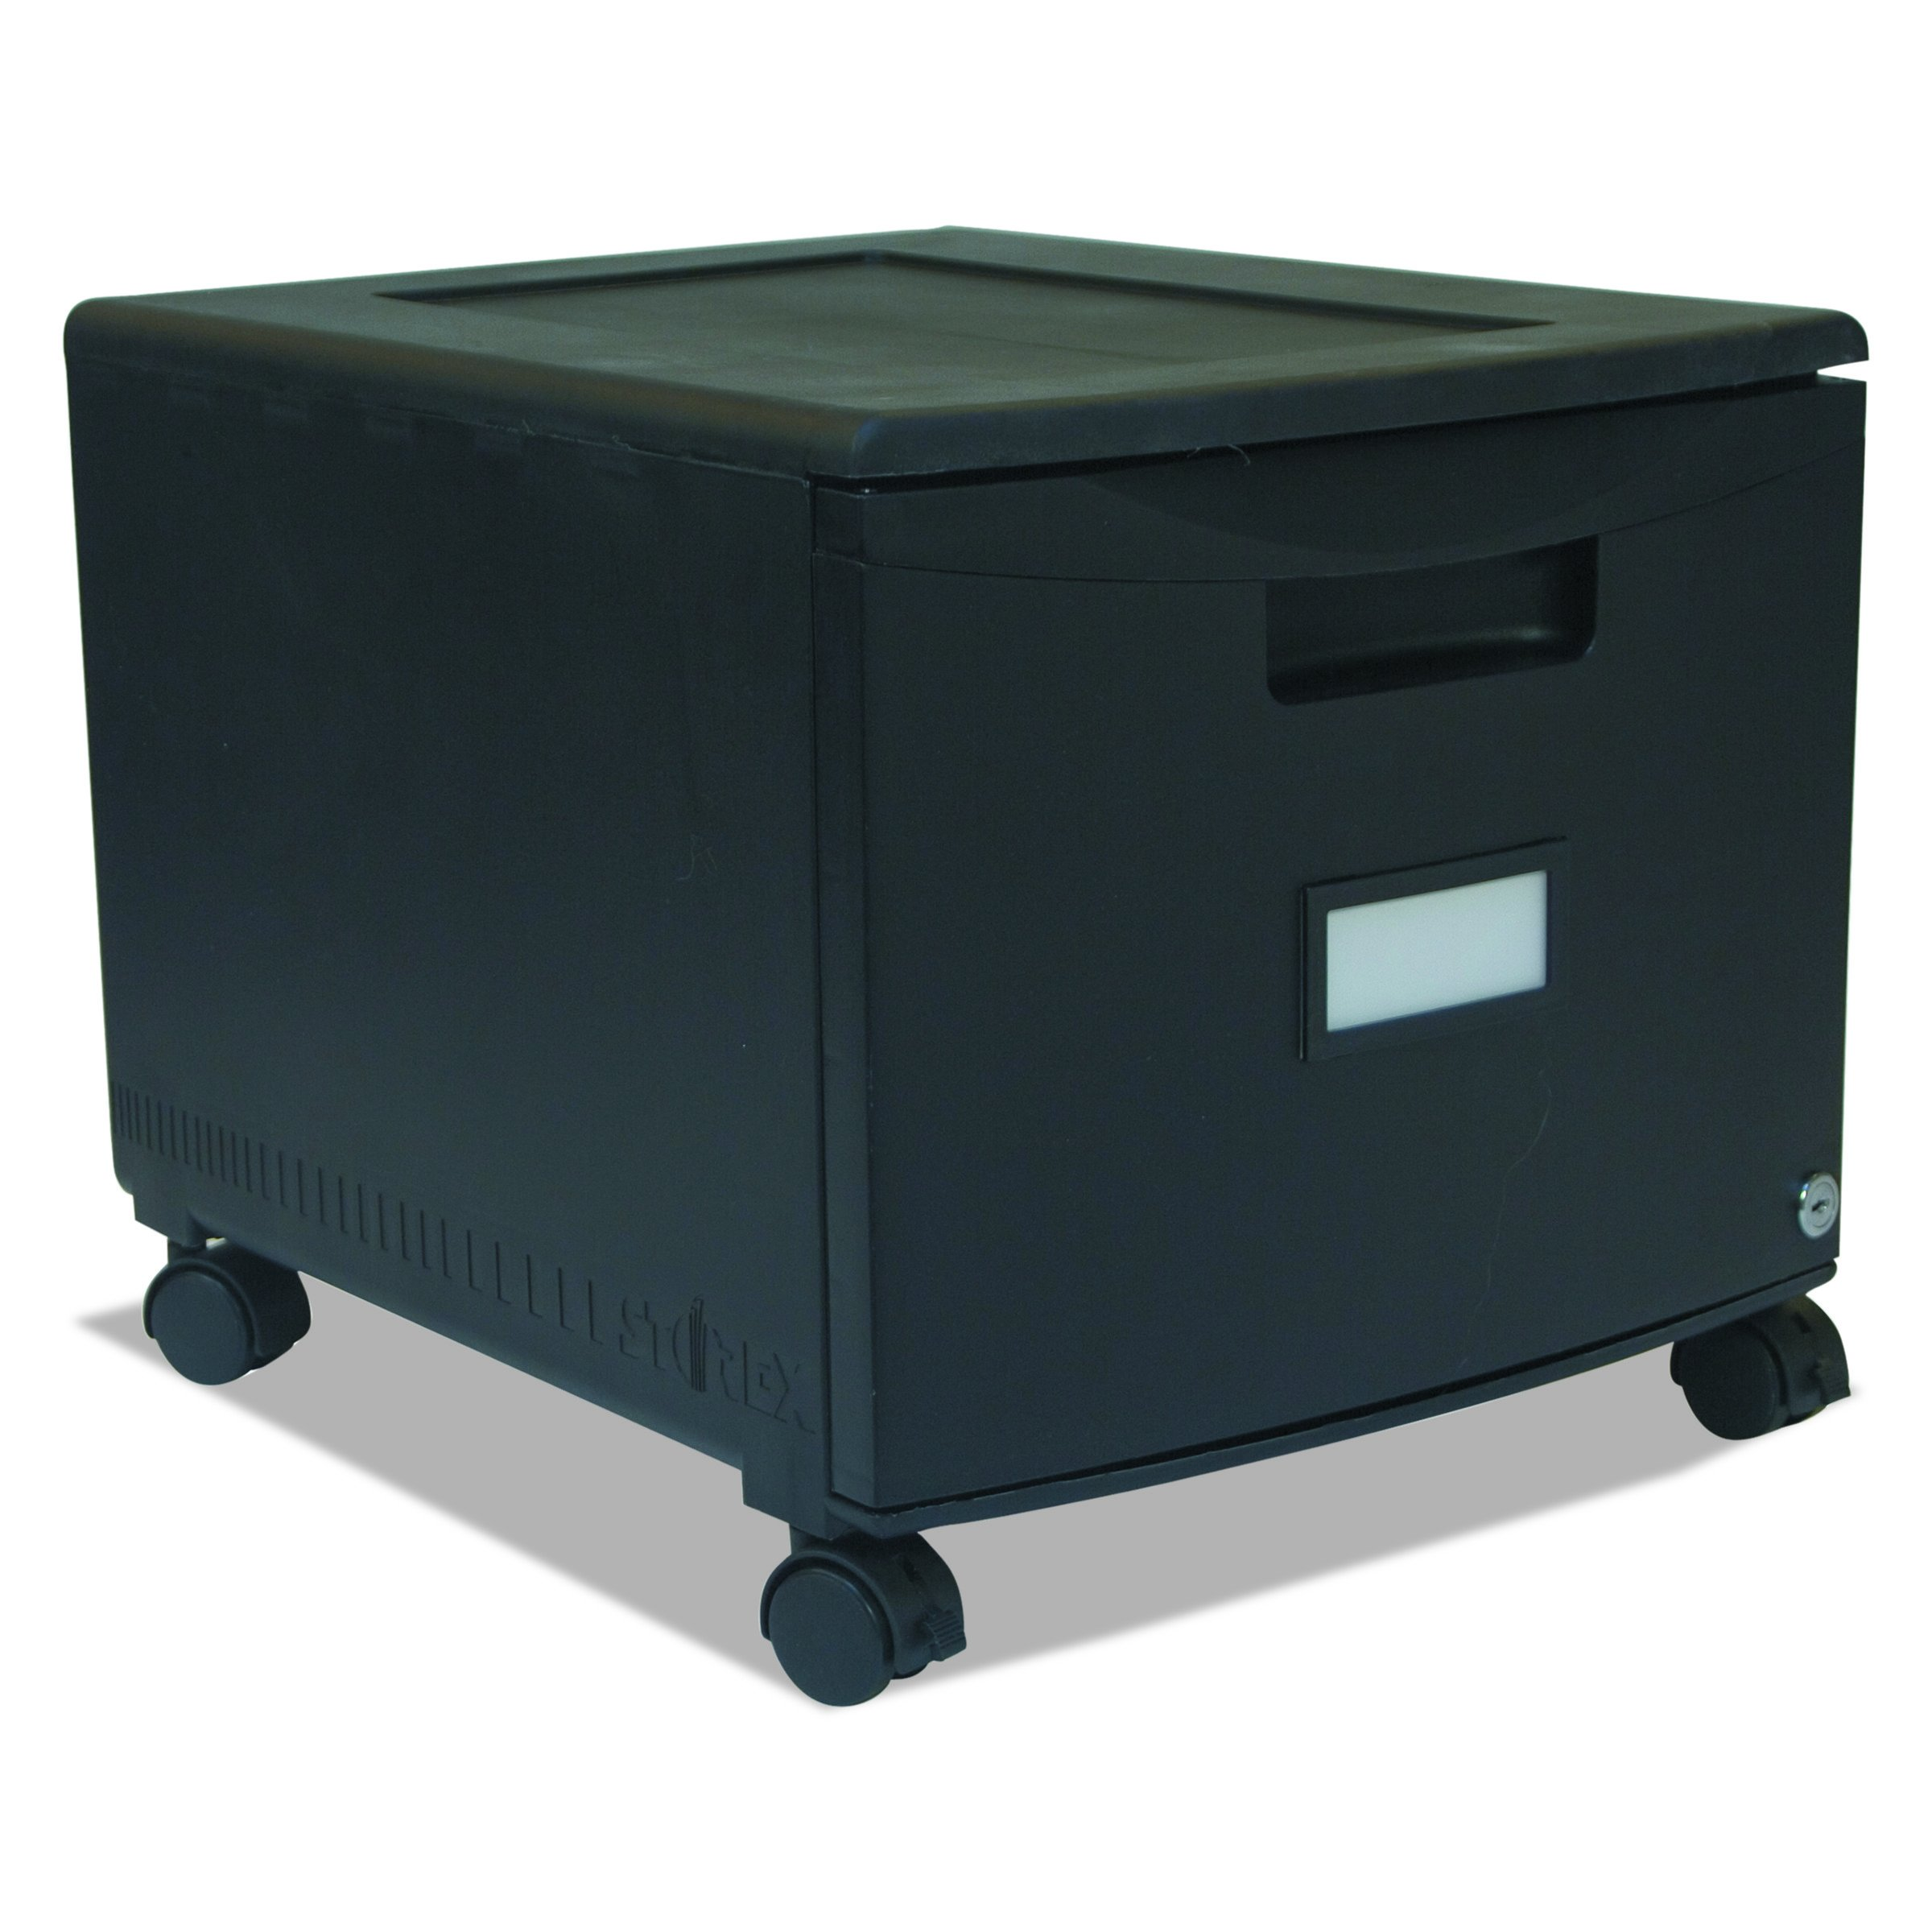 Storex Single Drawer Mini File Cabinet with Lock and Casters, Legal/Letter Size 18.25 x 14.75 x 12.75 Inches, Black (STX61259B01C)